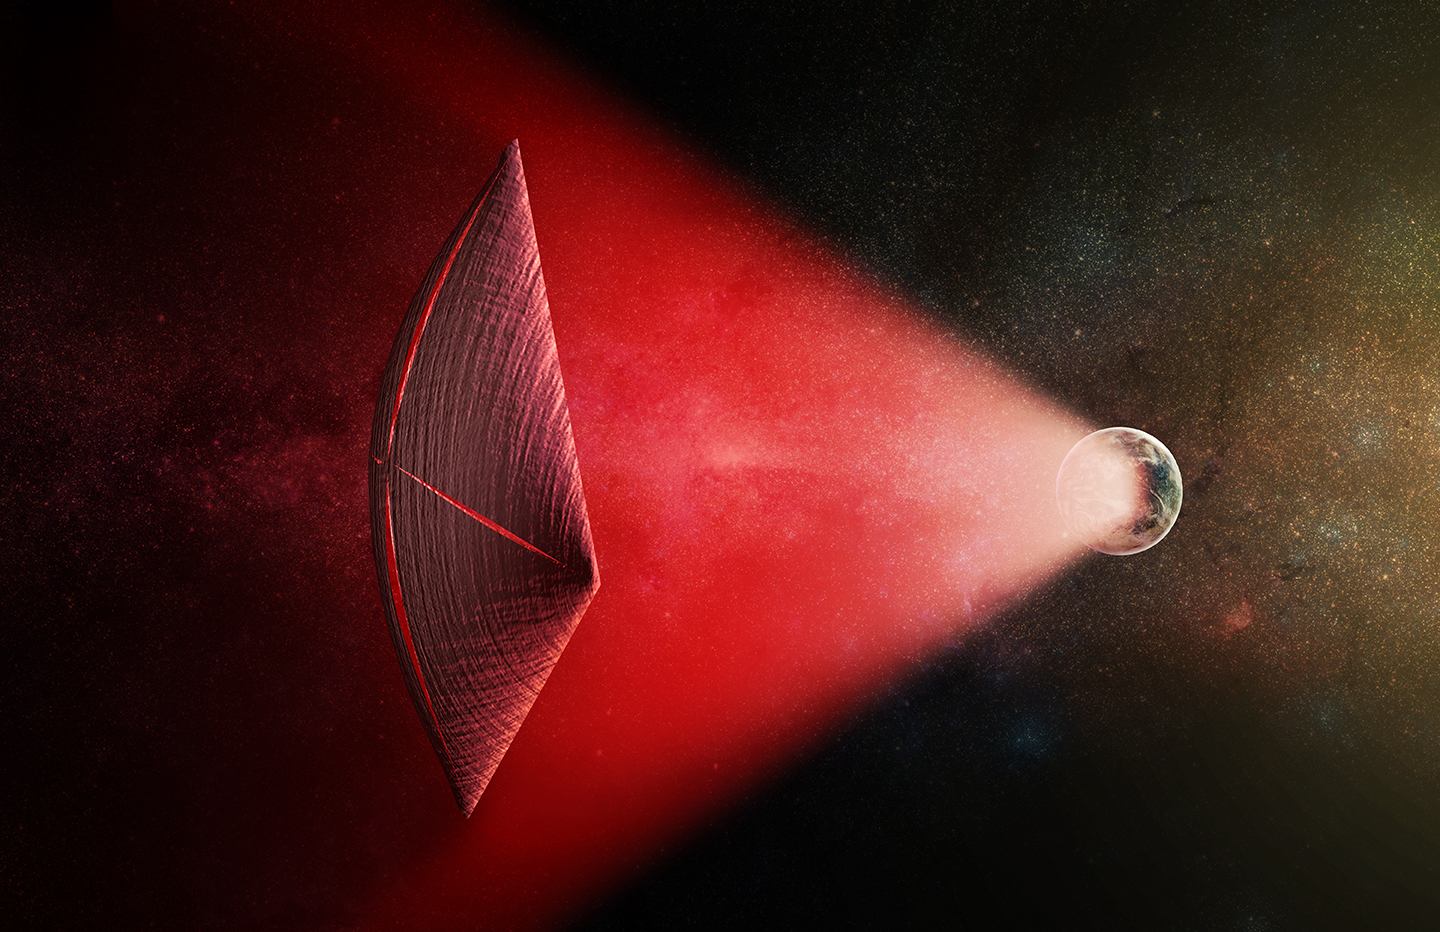 Physicists Say Fast Radio Bursts Could be Powering Alien Spaceships